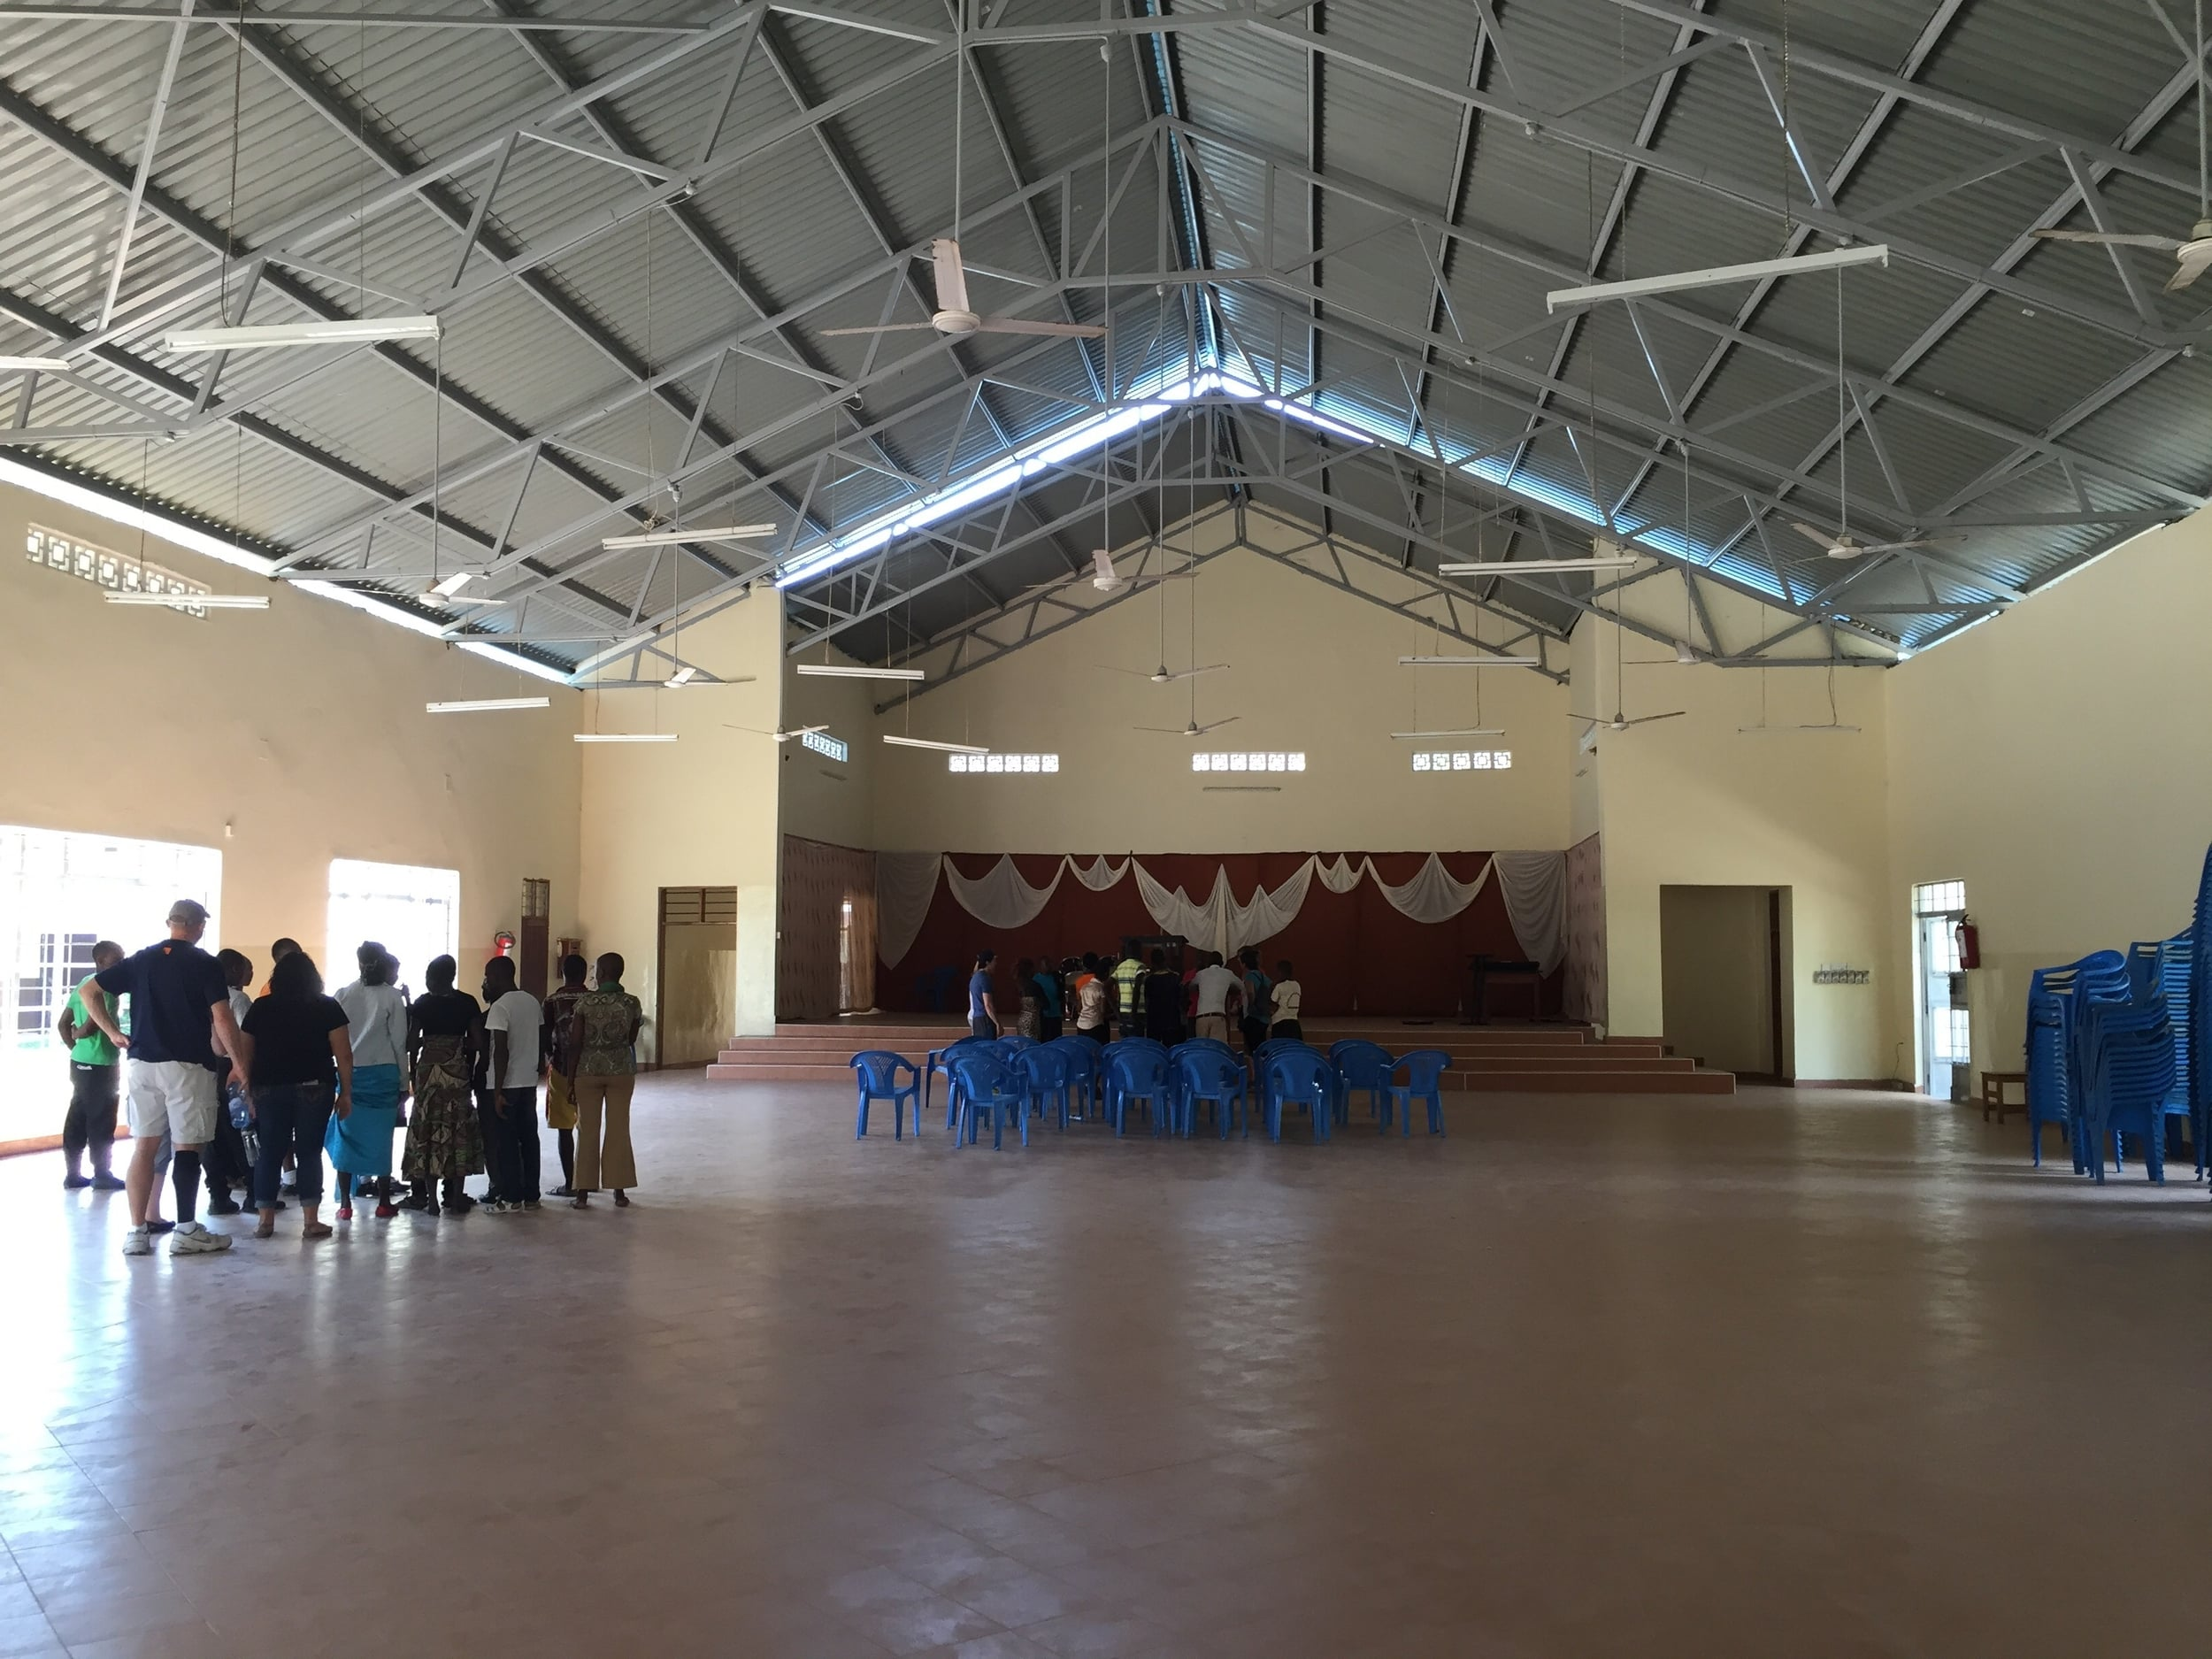 The high school has excellent facilities, including their large chapel that serves as a community church on Sundays.